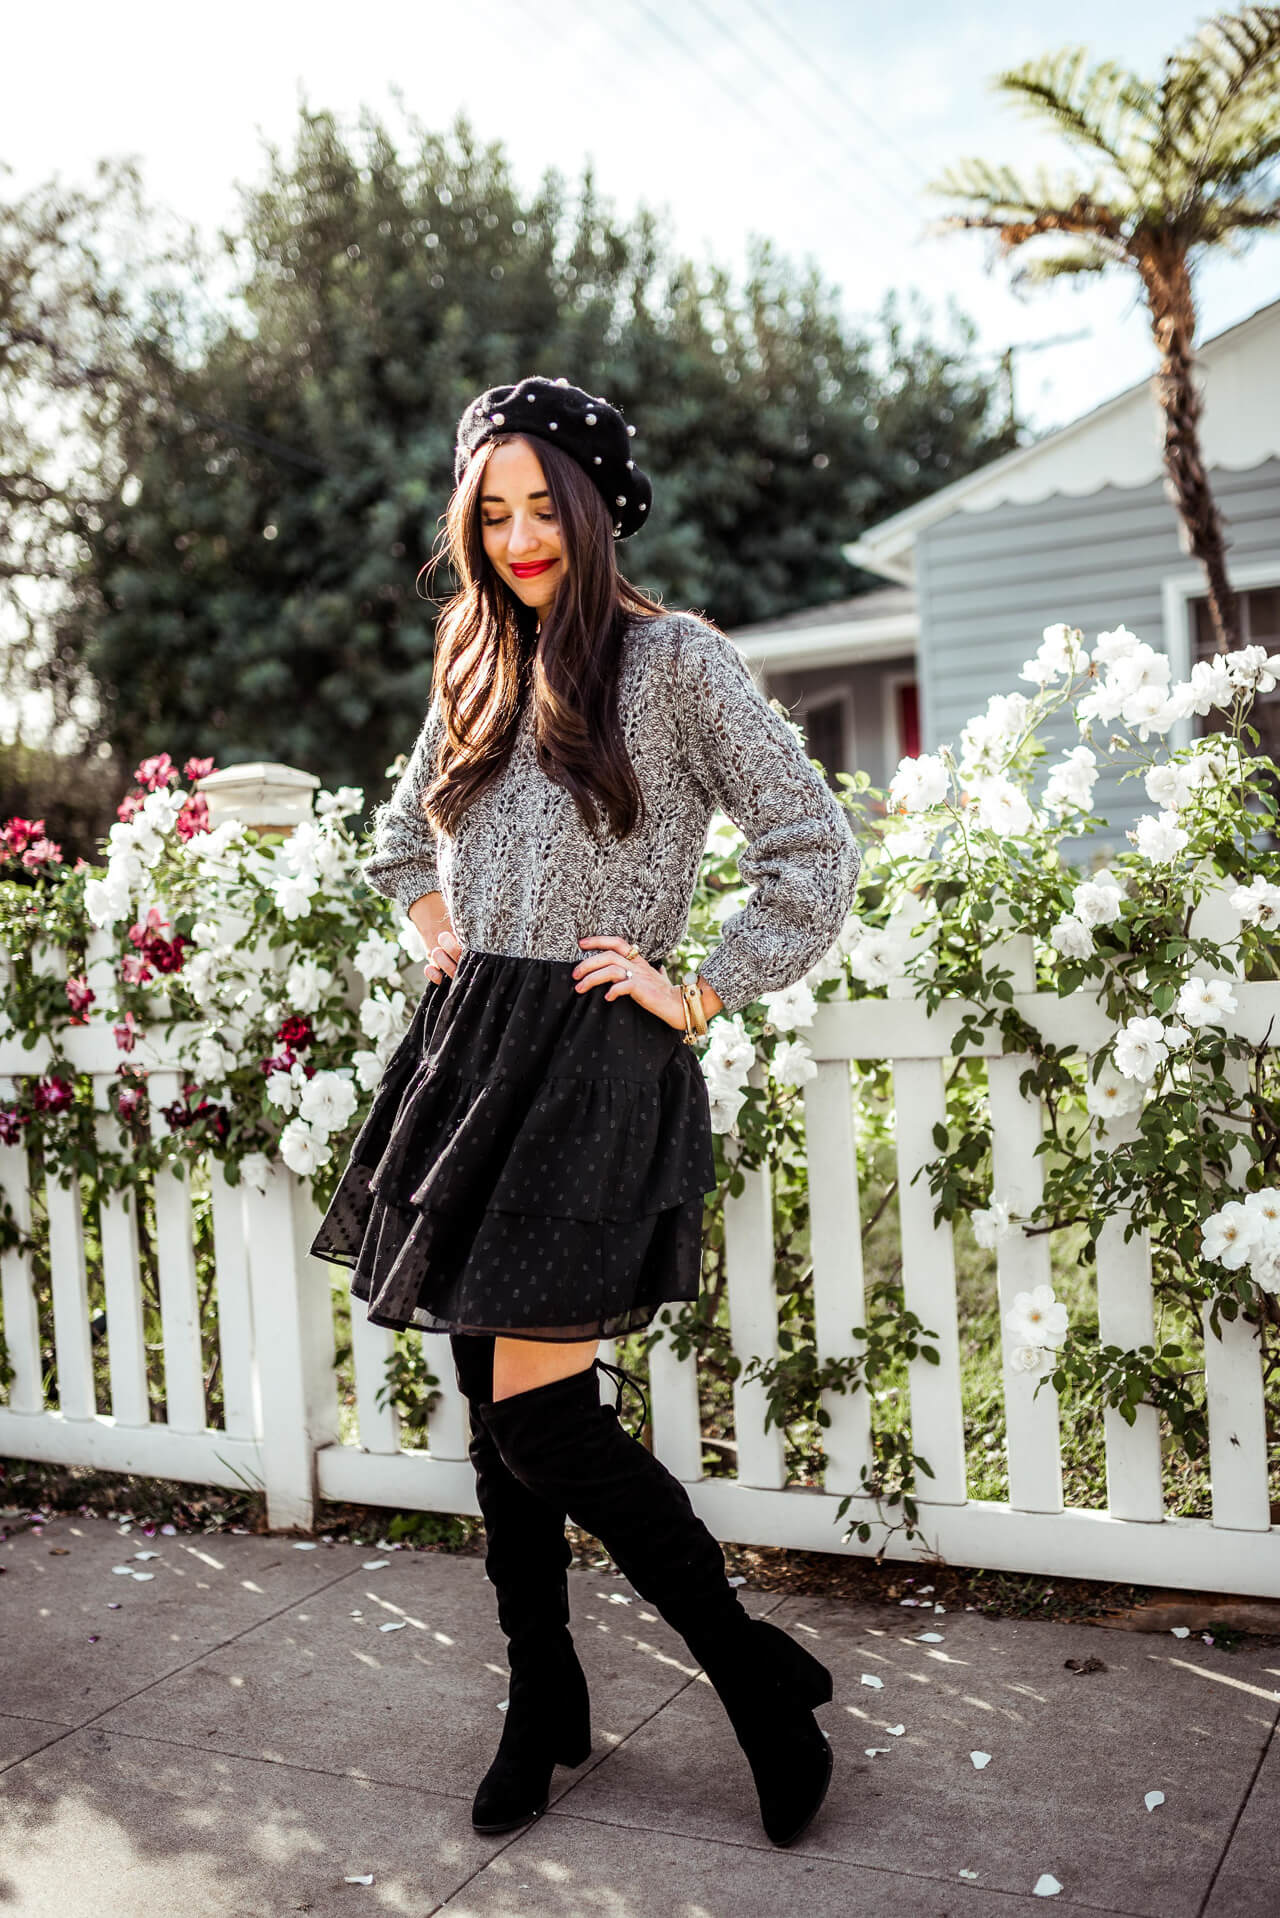 love this skirt and over-the-knee boots together